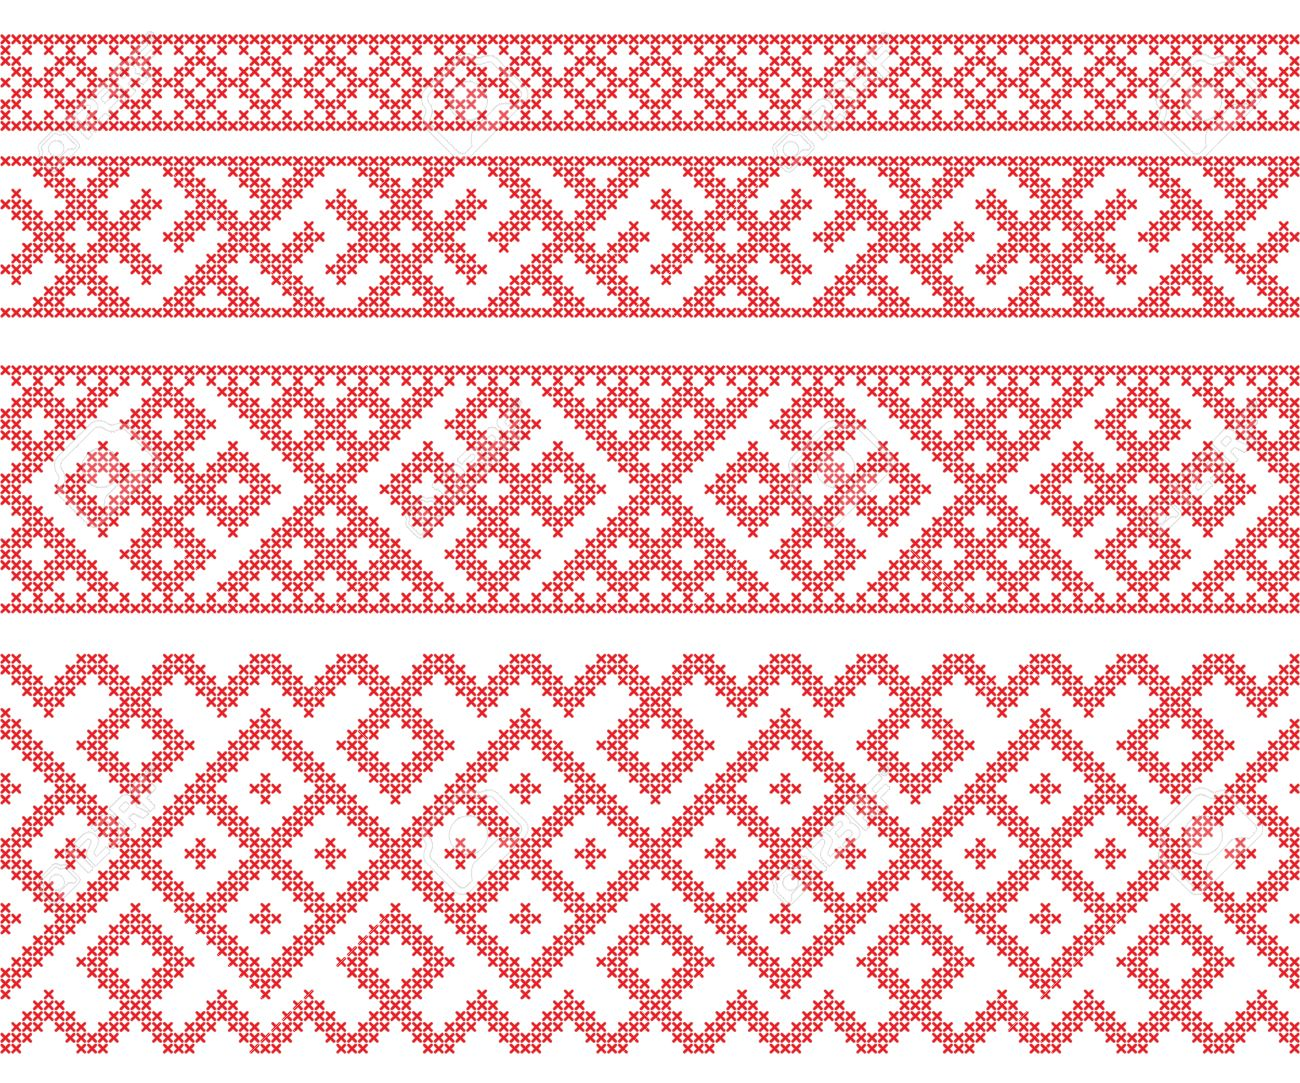 Seamless Russian folk patterns, cross-stitched embroidery imitation